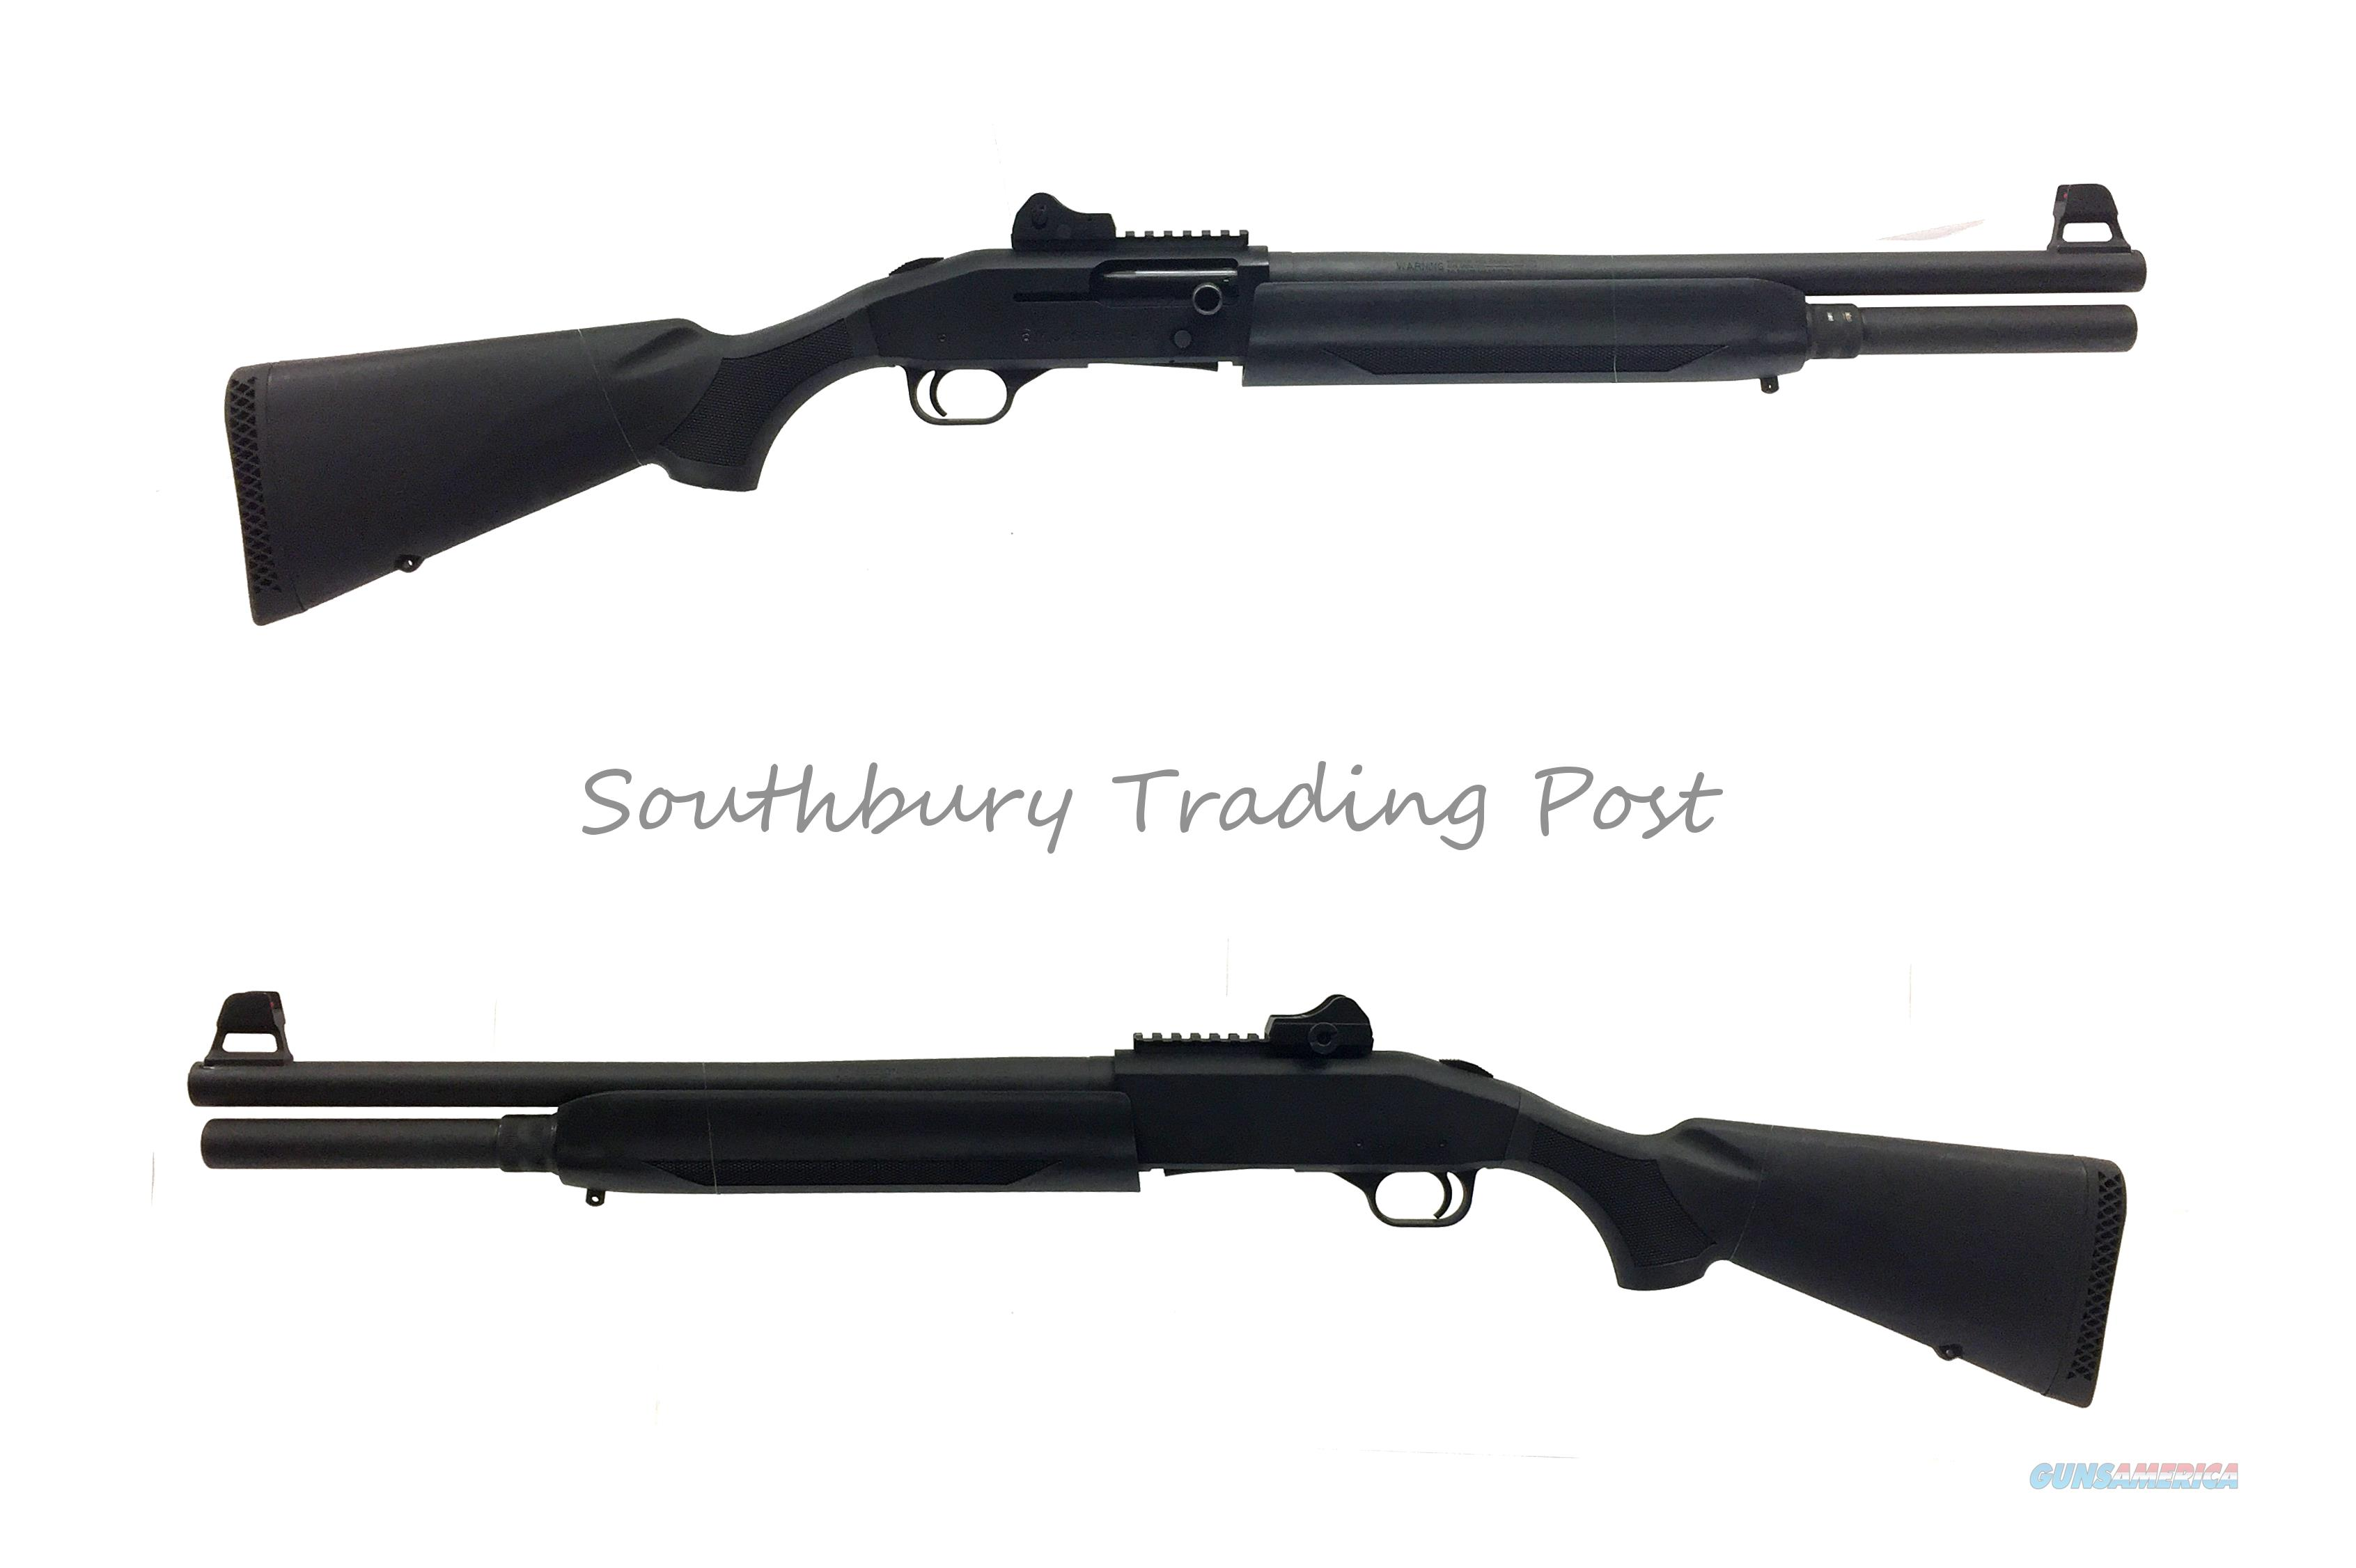 Mossberg 930 SPX Tactical 12 Gauge Autoloading Shotgun  Guns > Shotguns > Mossberg Shotguns > Autoloaders